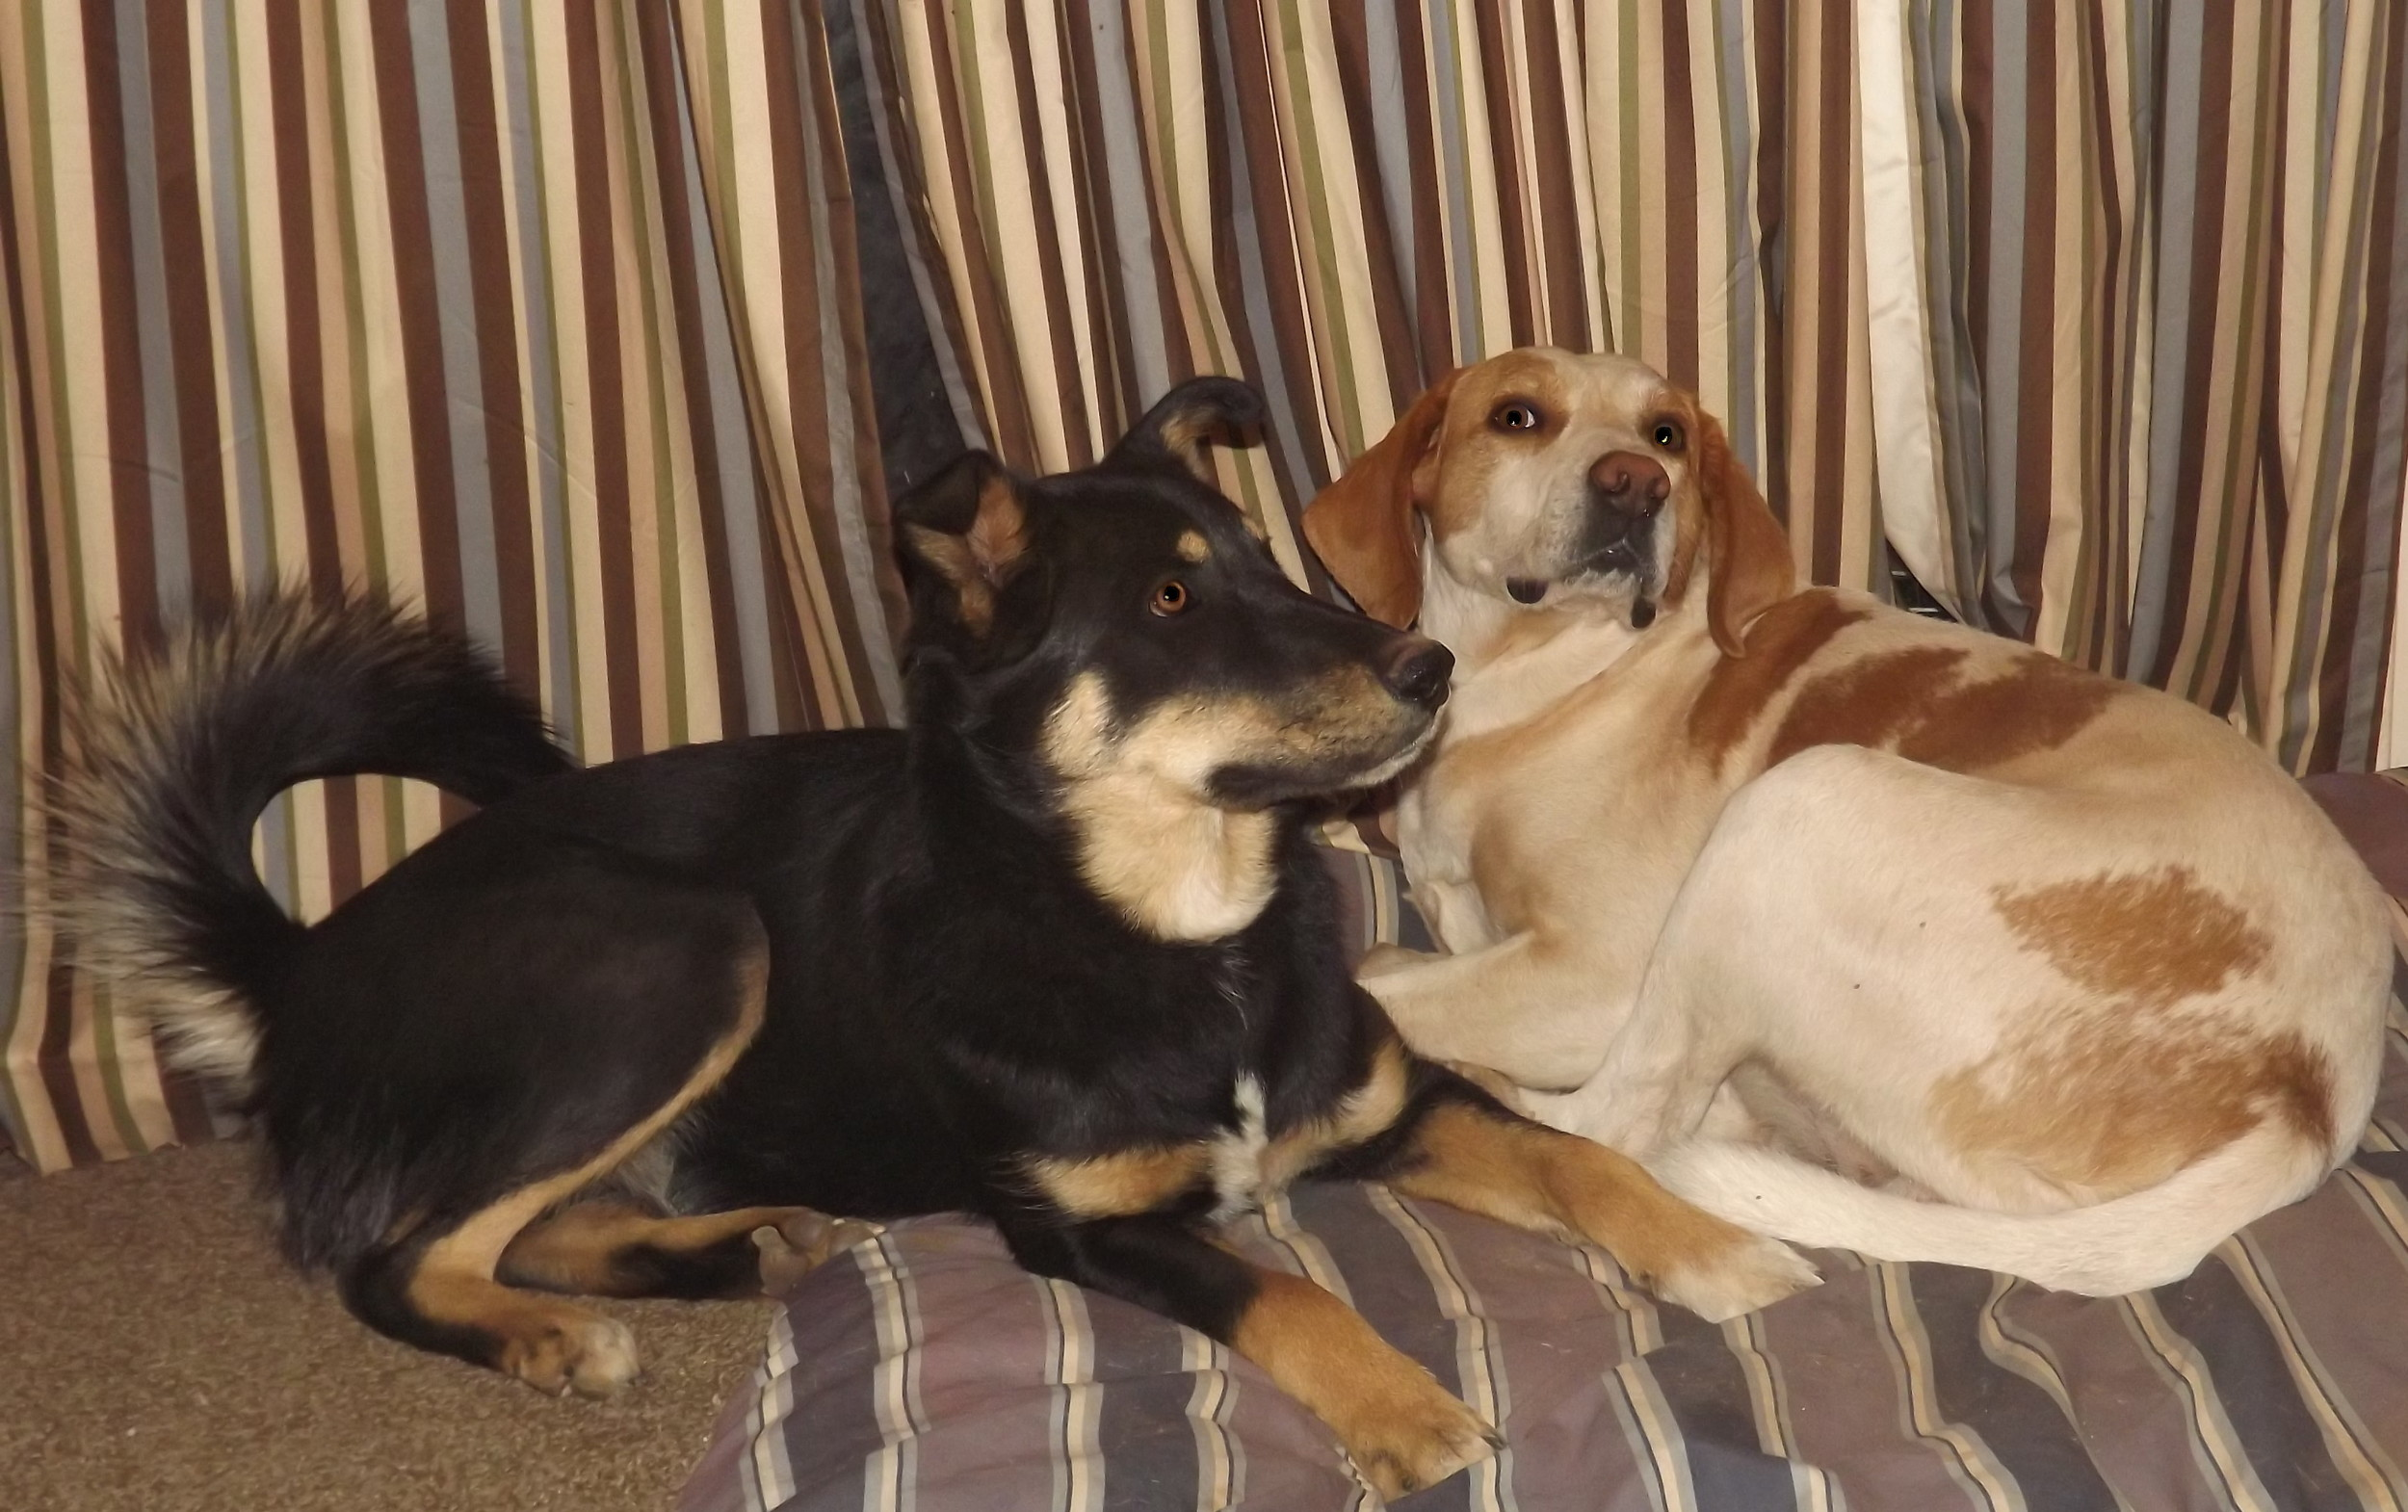 Dogs -Pupi and Jake